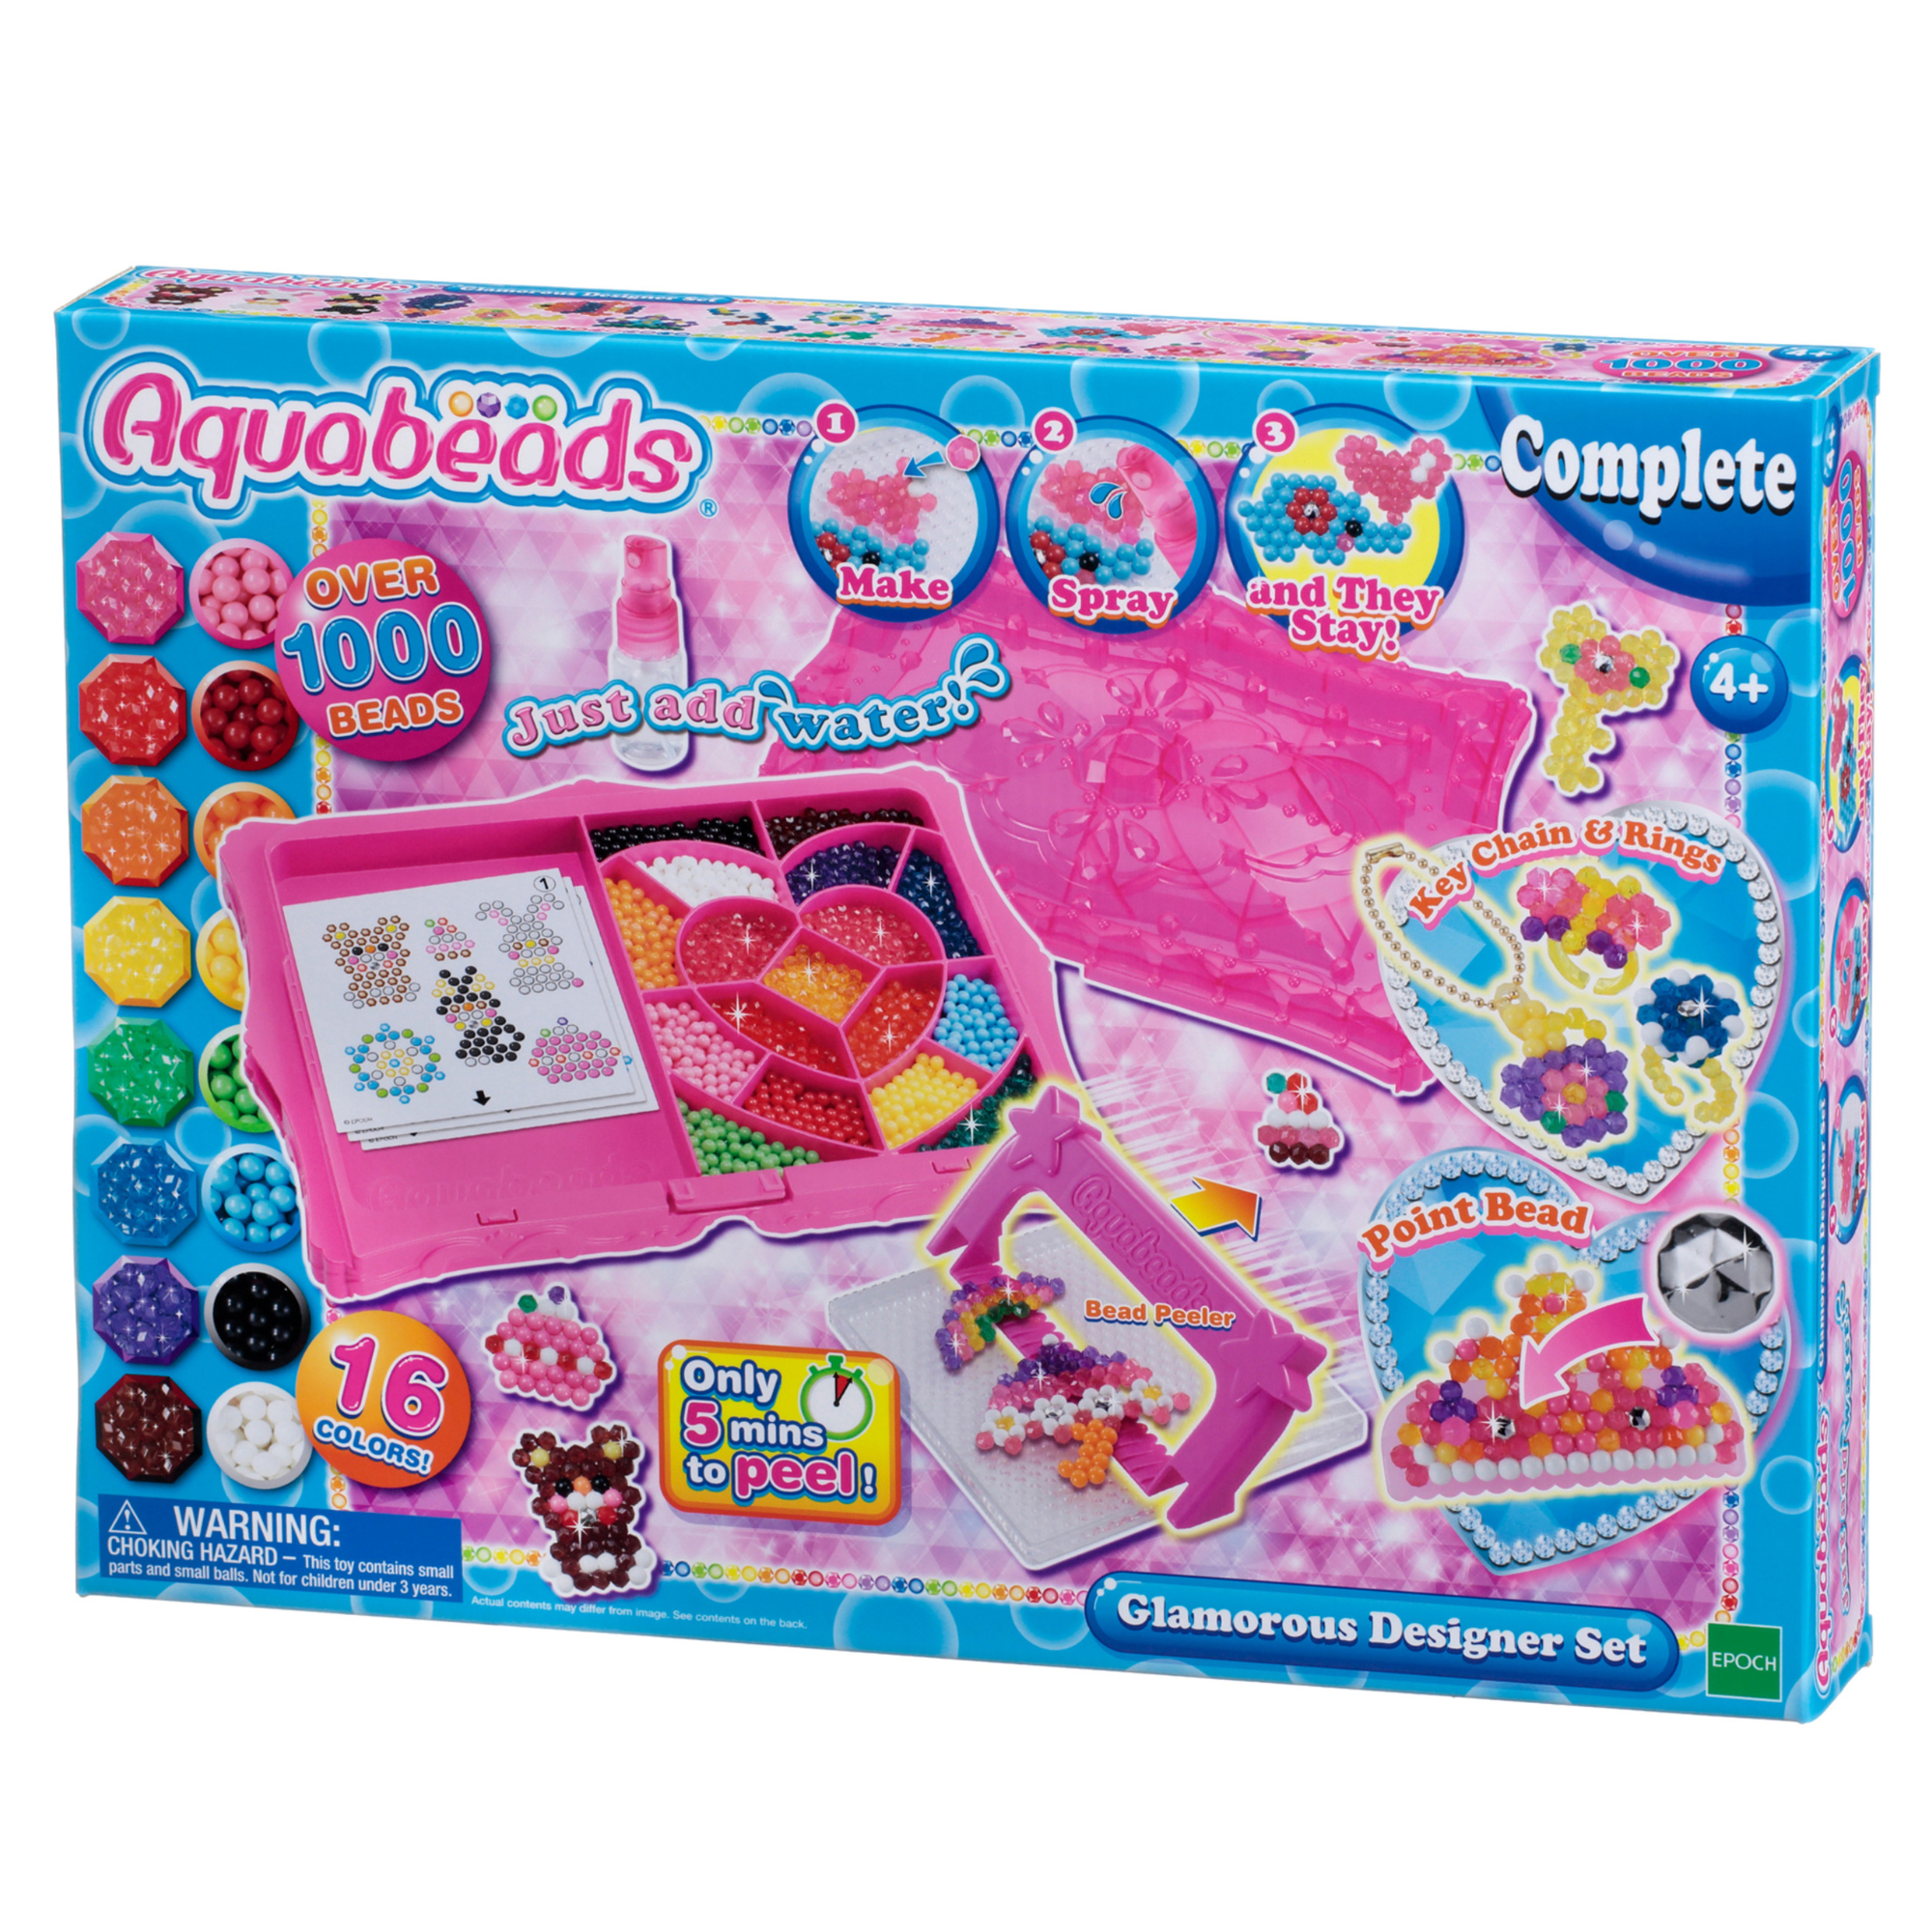 Aquabeads Glamourous Designer Bead Set: Create Endless Jewelry!